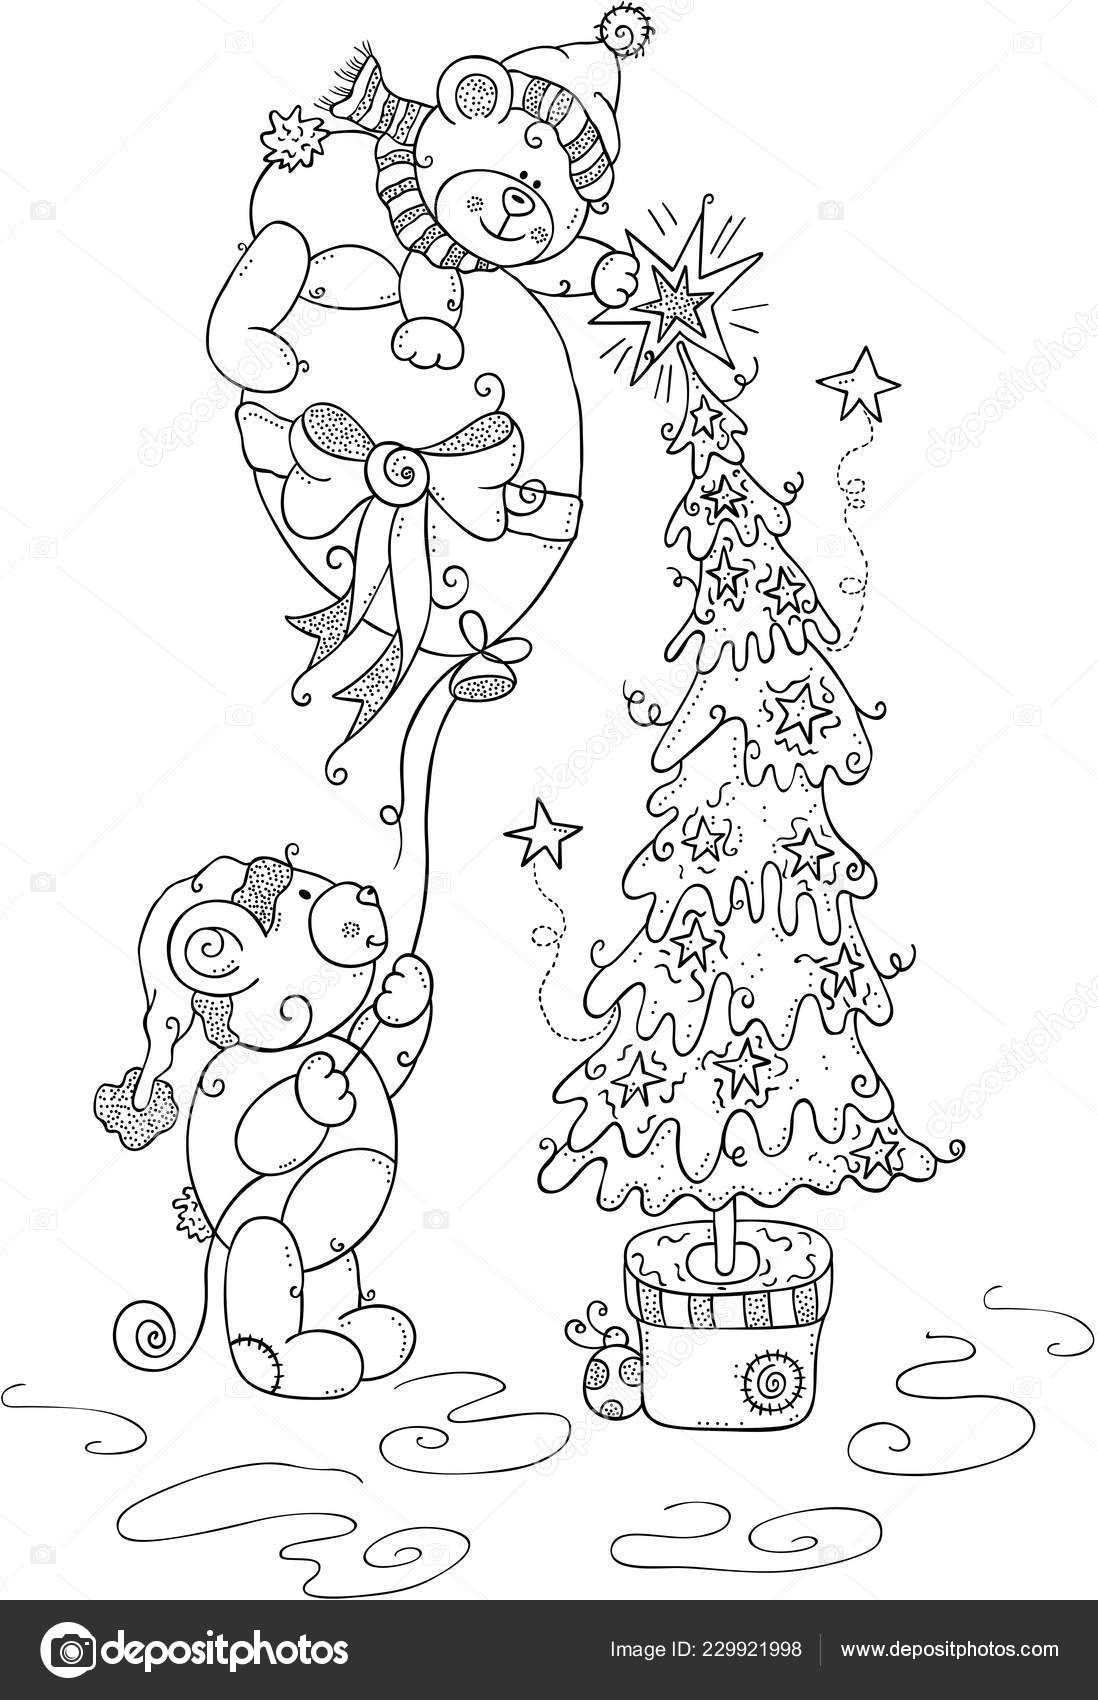 Kids Coloring Page Christmas Teddy Bears Stock Vector C Socris79